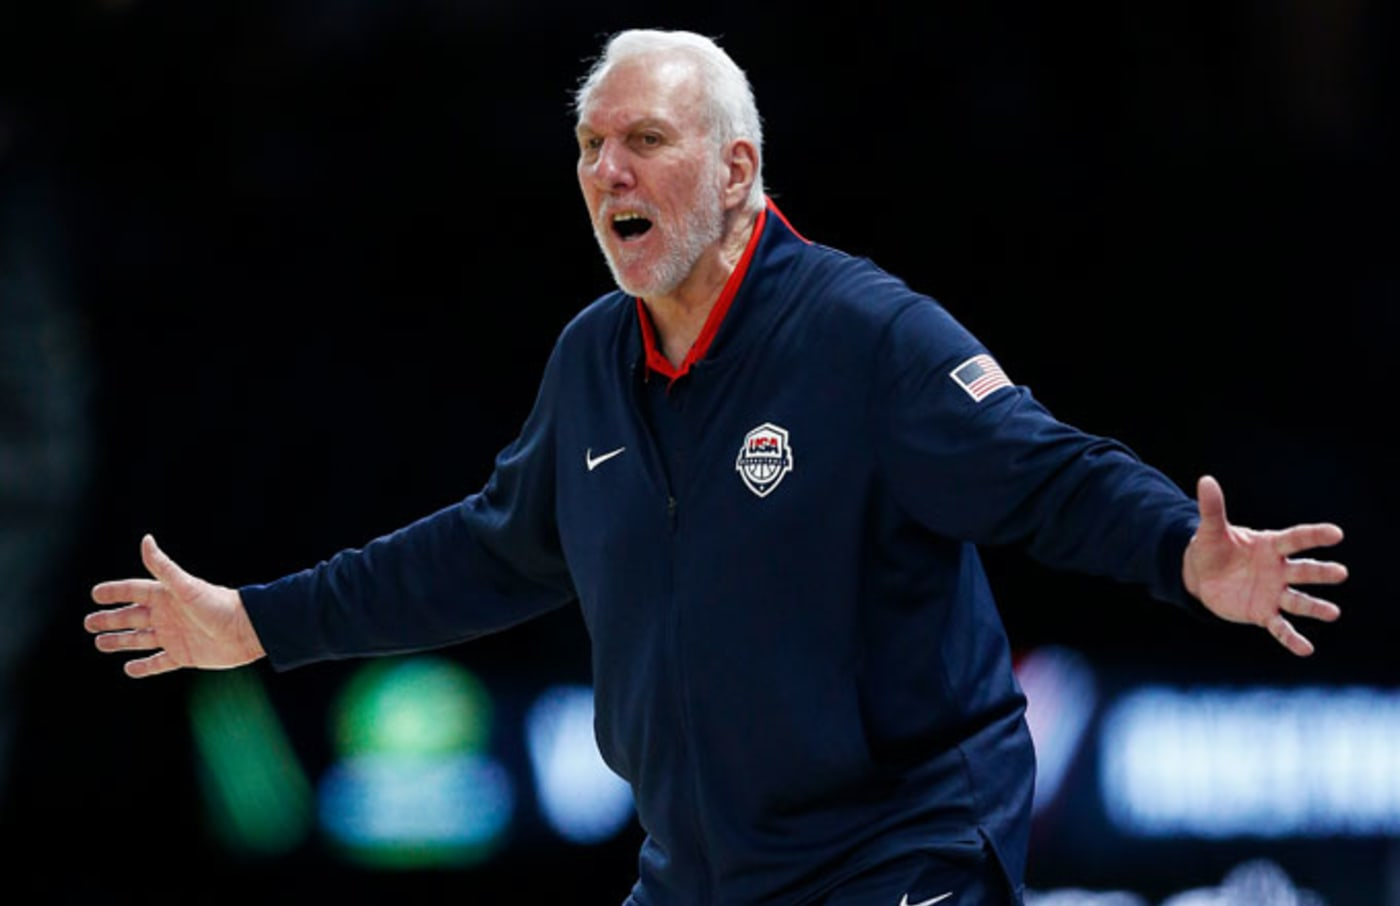 Gregg Popovich reacts during Team USA's 98 94 loss to Australia.